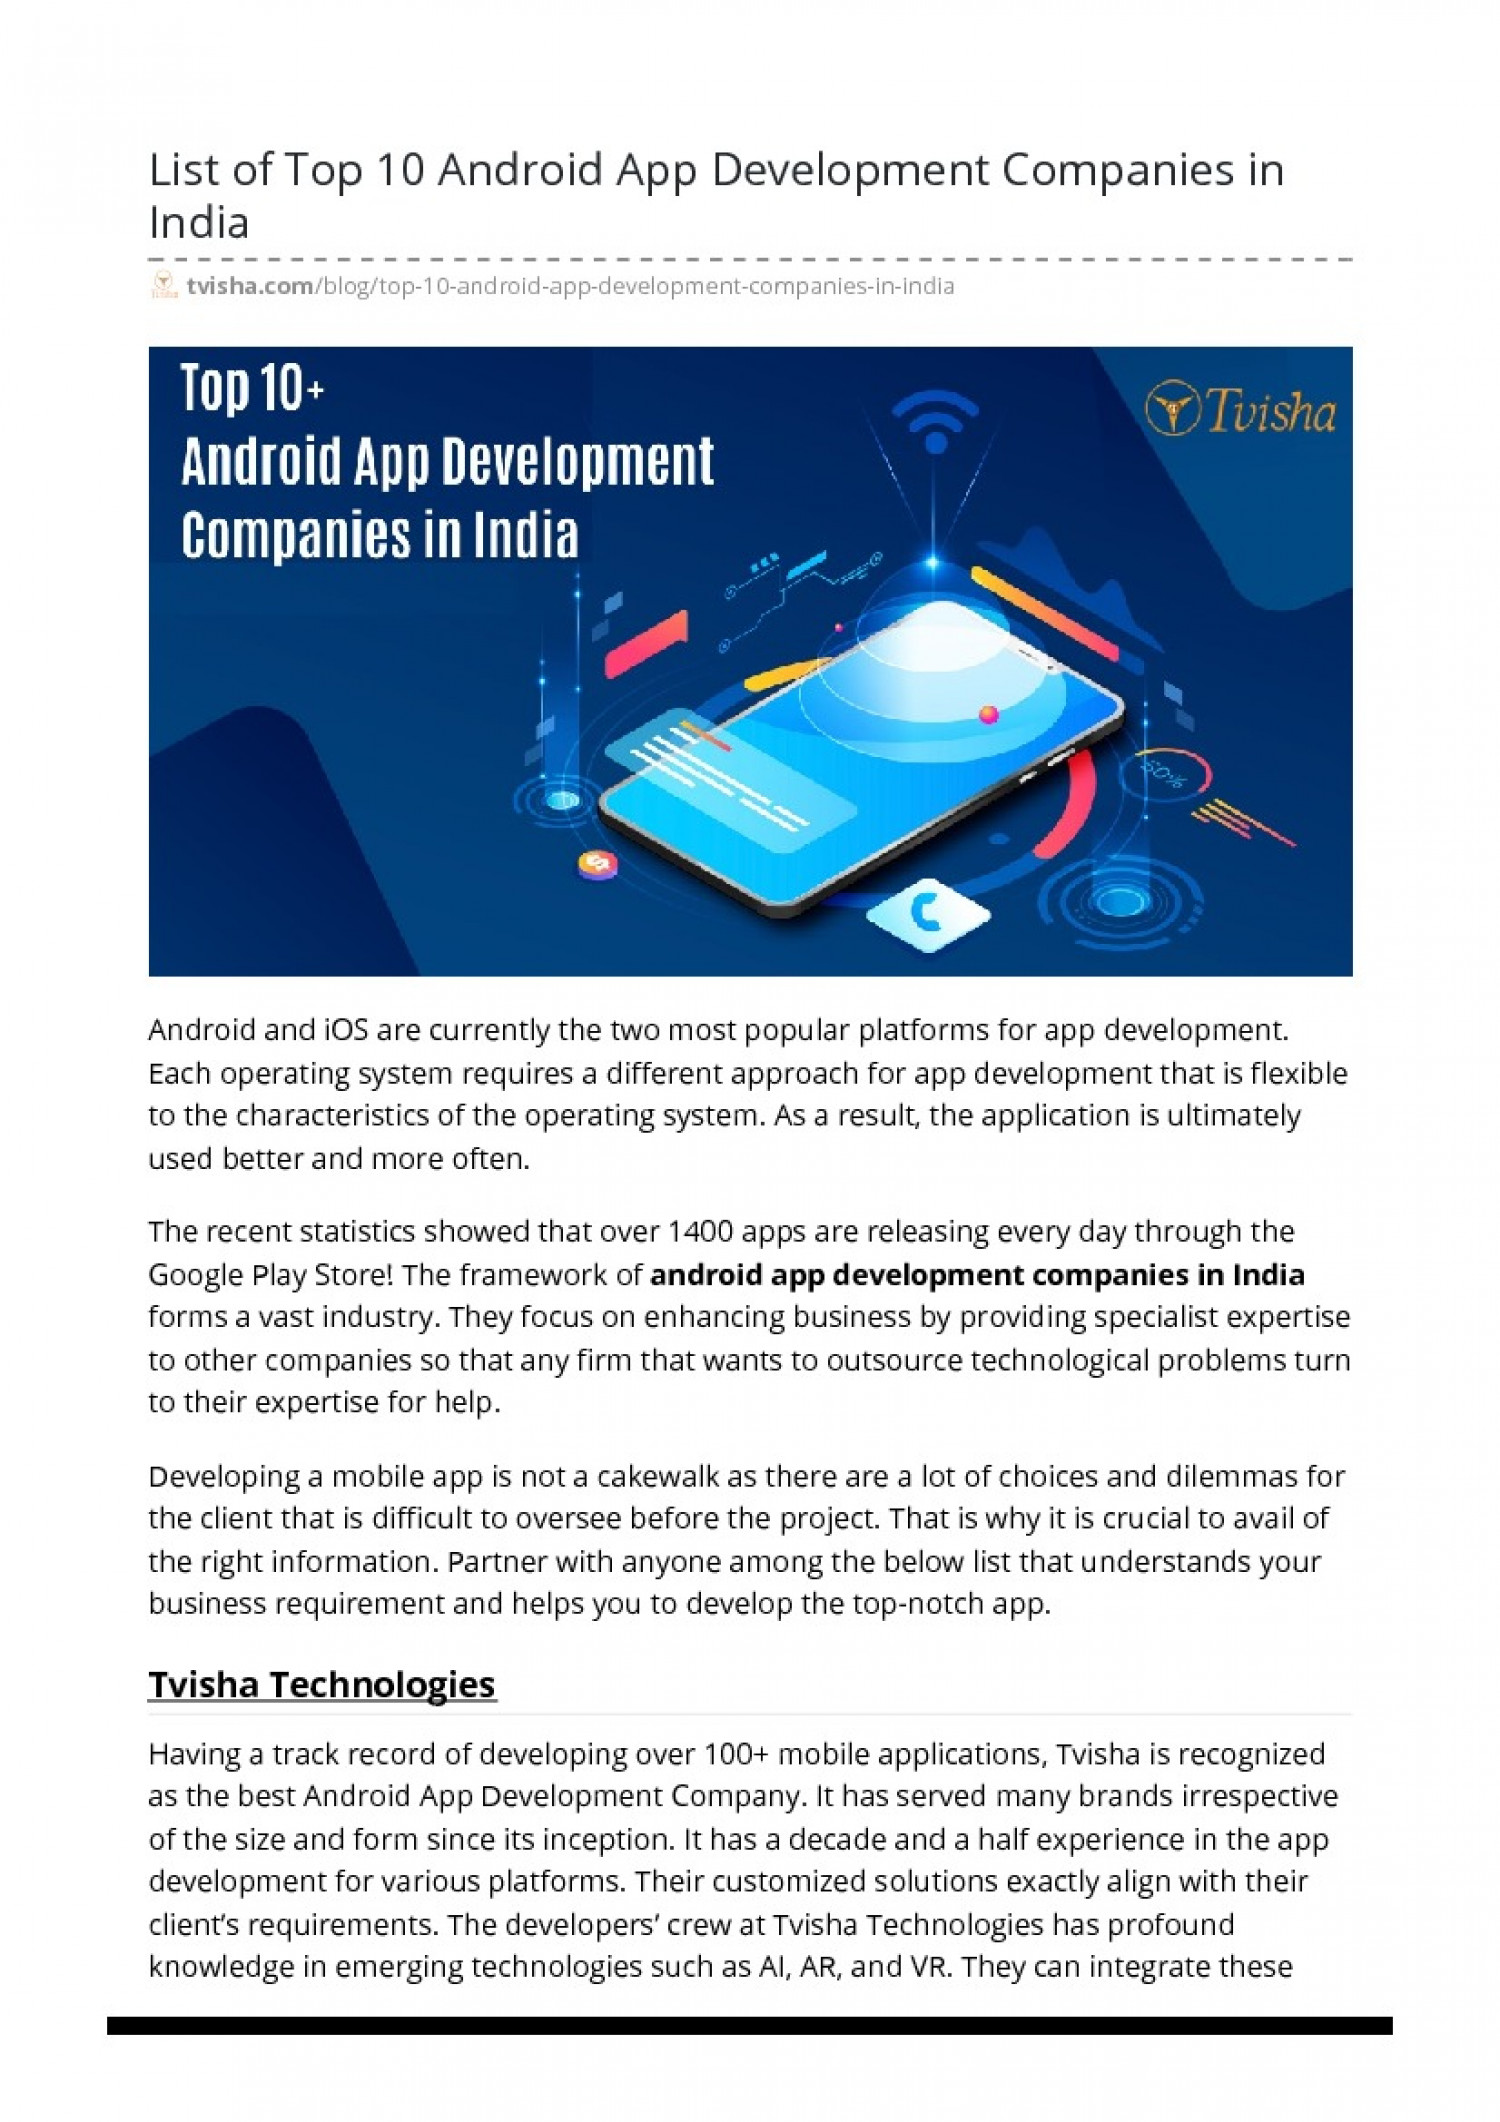 Top 10 Android App Development Companies in India Infographic